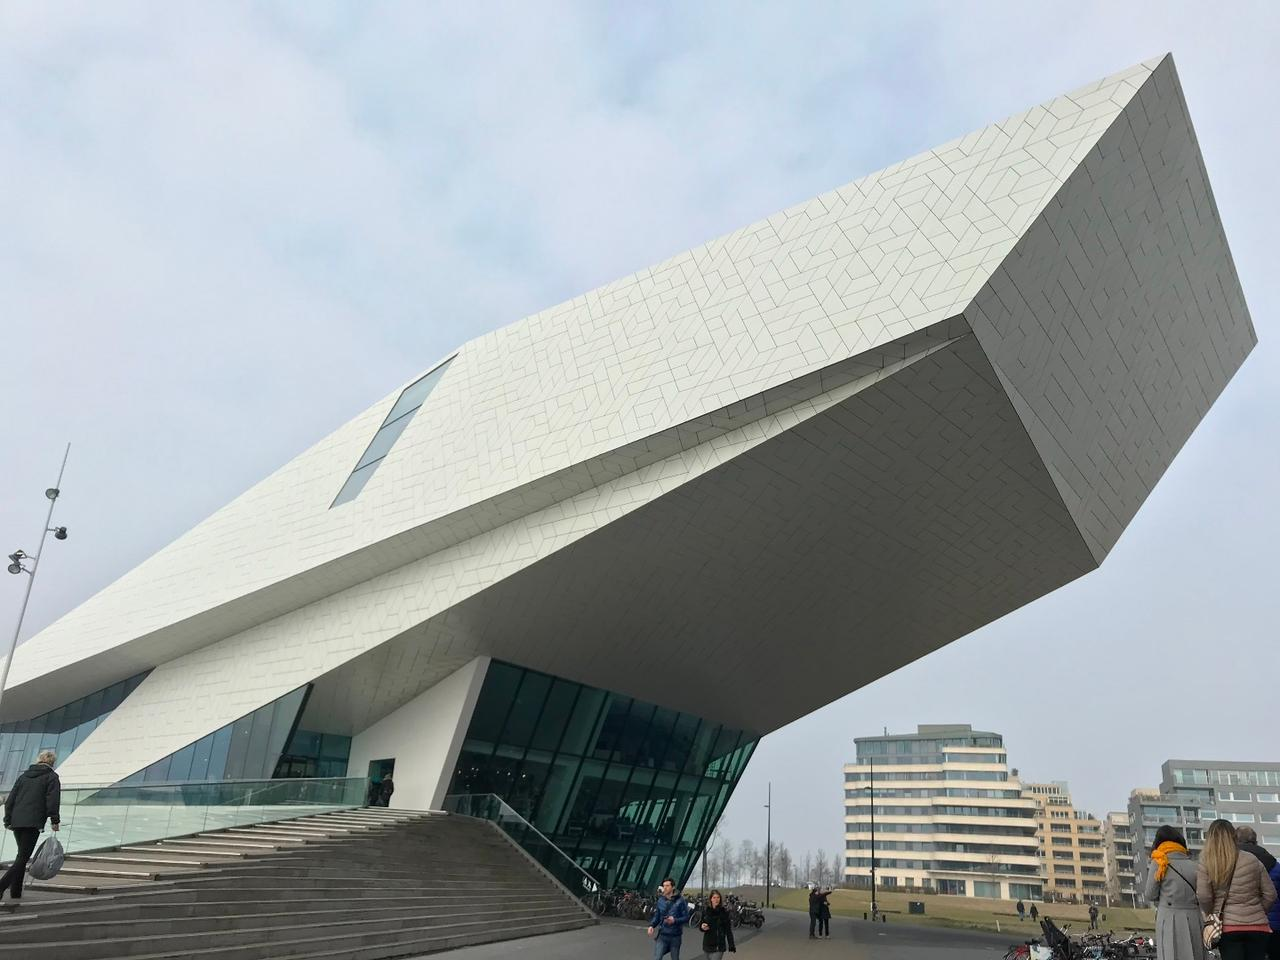 The EYE Filmmuseum designed by Delugan Meissl Associated Architects is the Netherlands' national film museum. Its white roof is meant to symbolize cinematography